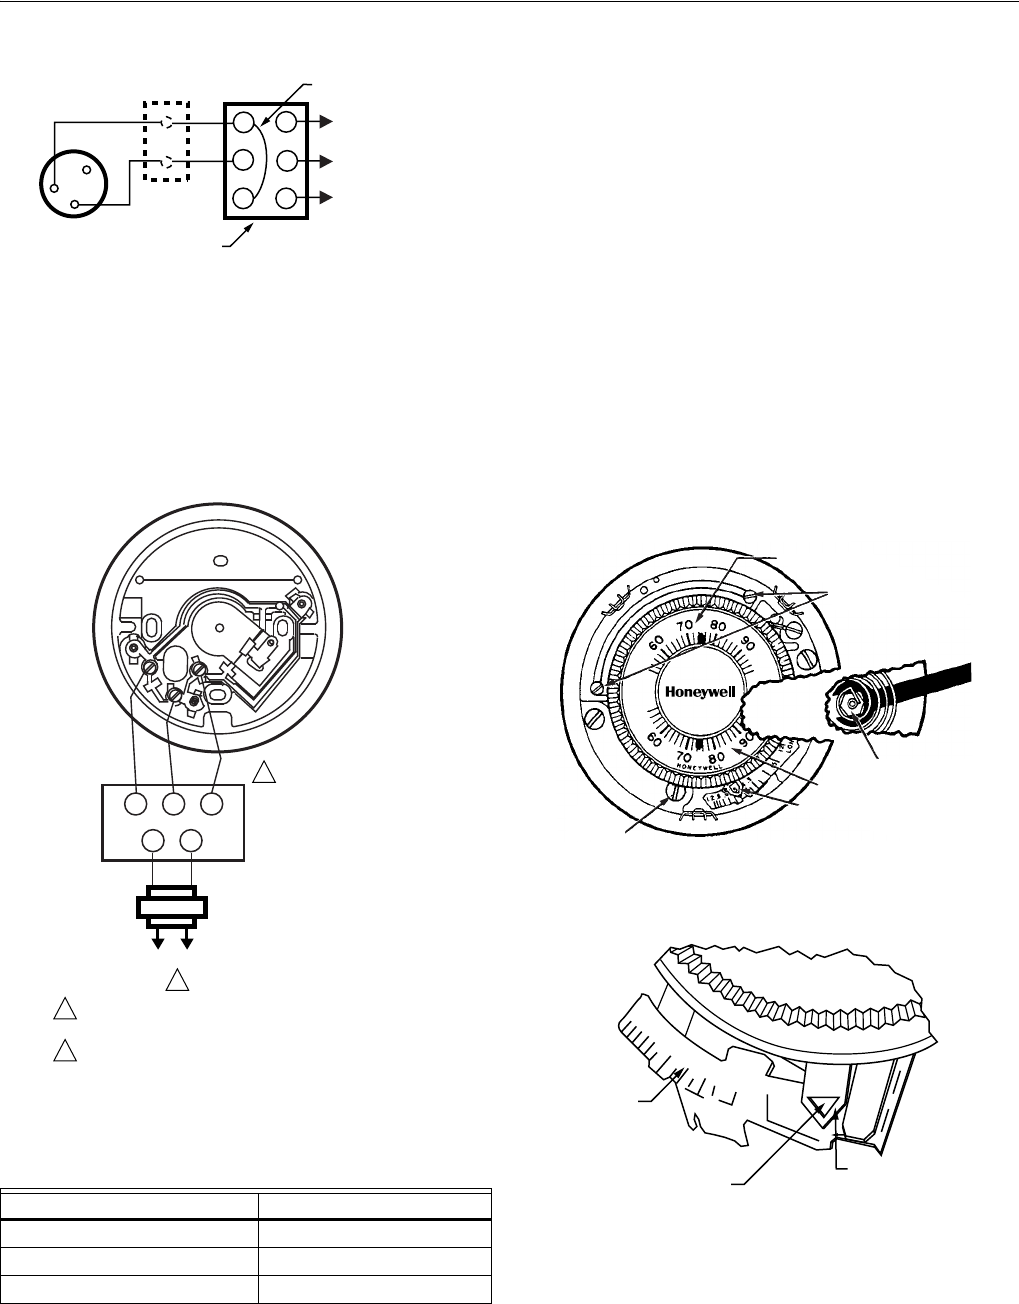 Honeywell Thermostat T87f Users Manual 60 2222 Family Wiring Diagram Thermostats